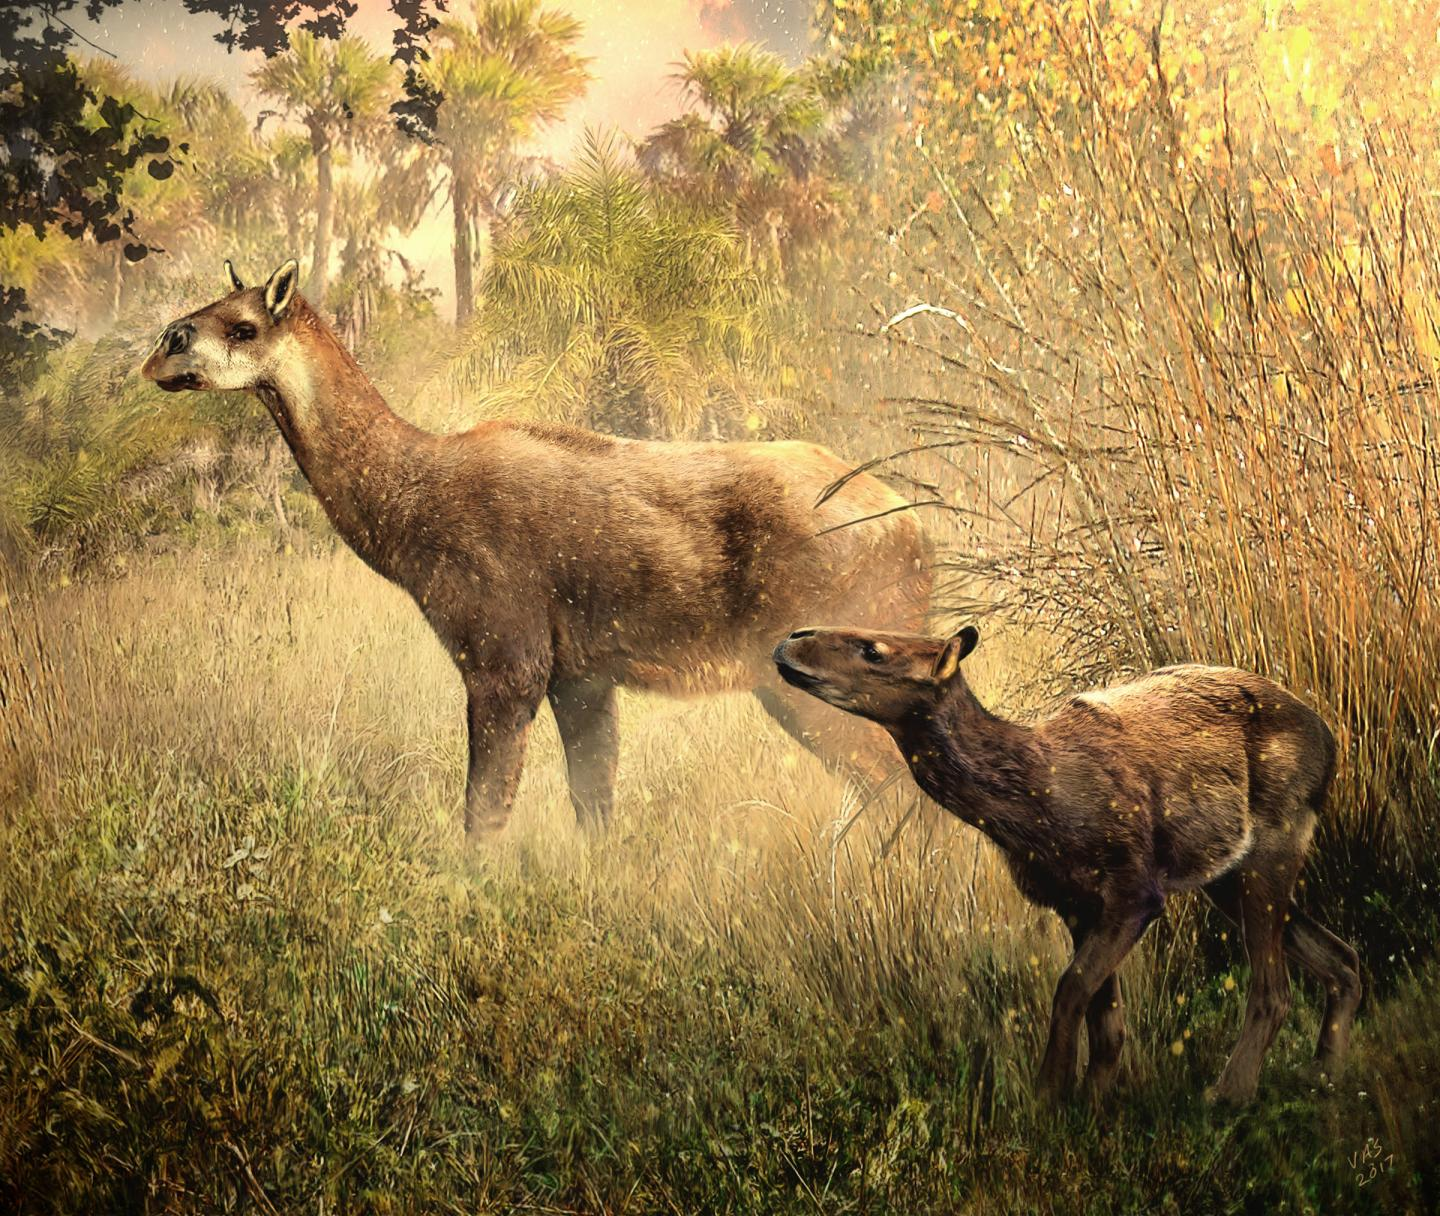 Litopterns: Two New Species of Hoofed Mammals in Bolivia